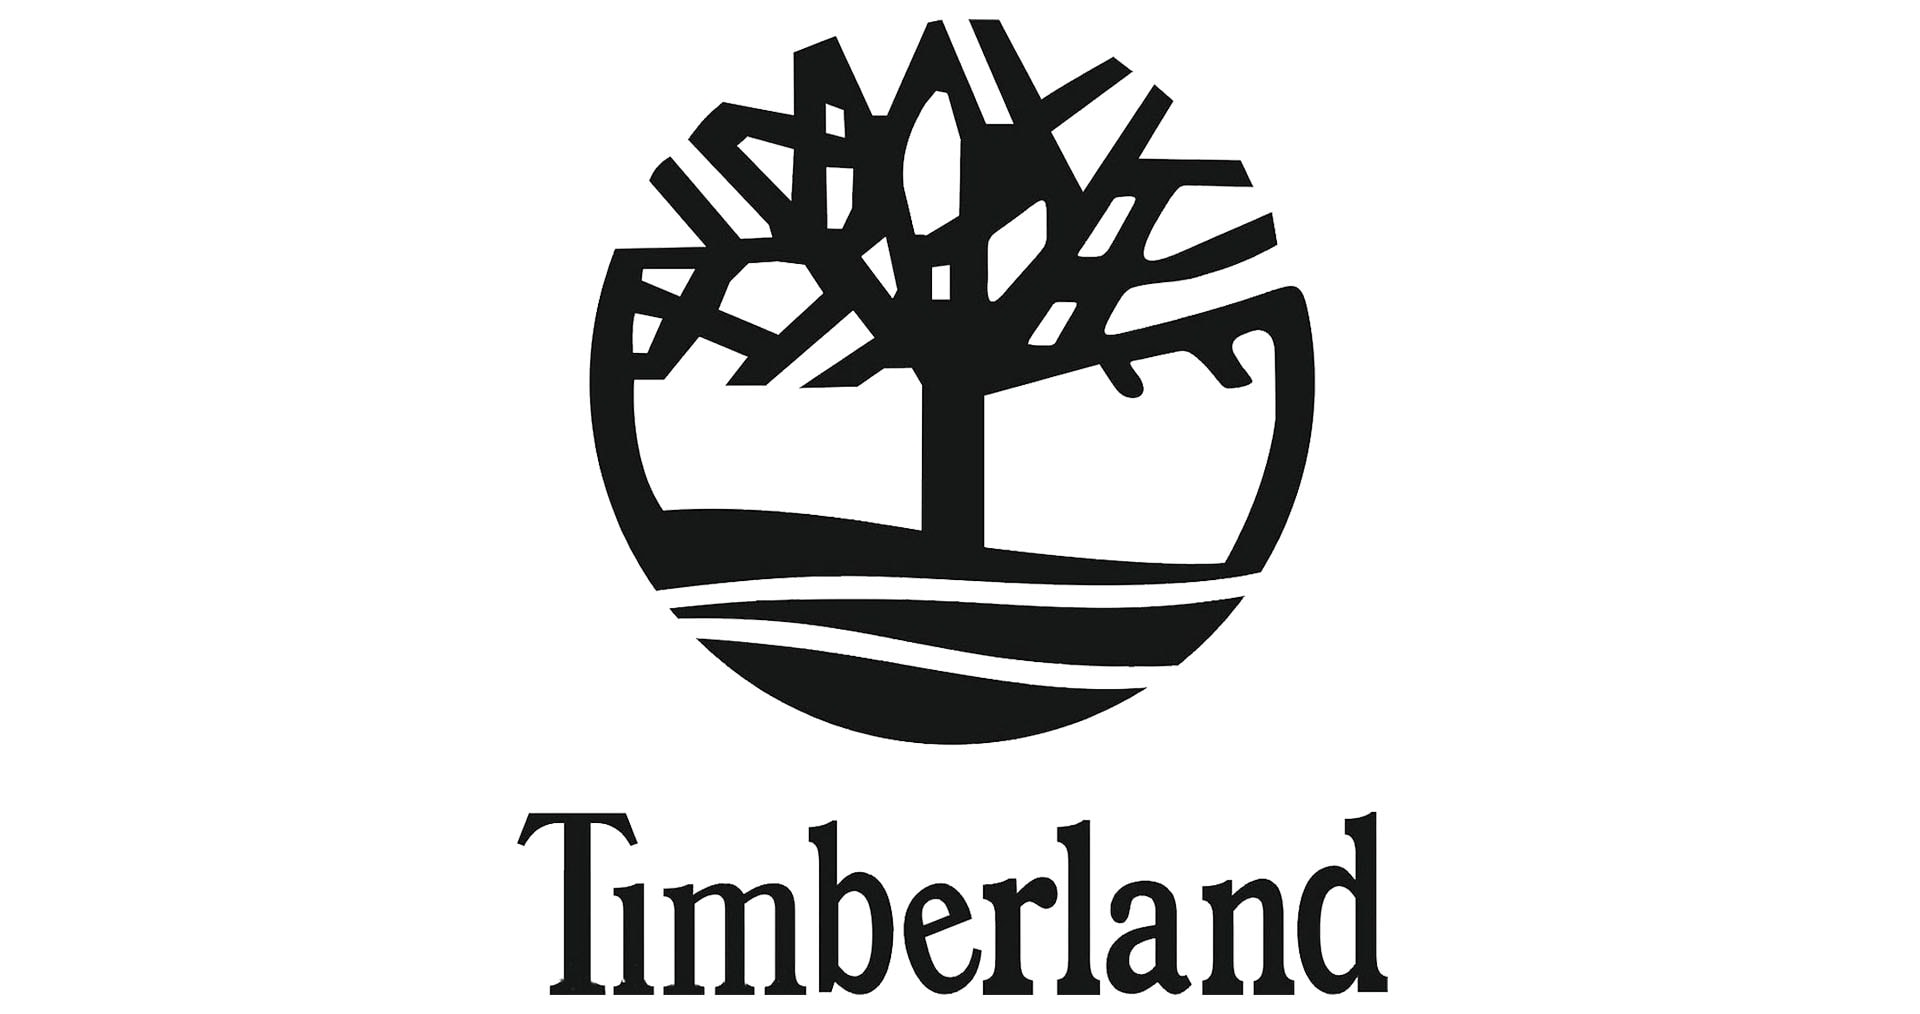 Initially made for outdoors and blue-collar workers, Timberland boots have become one of most popular casual footwear today